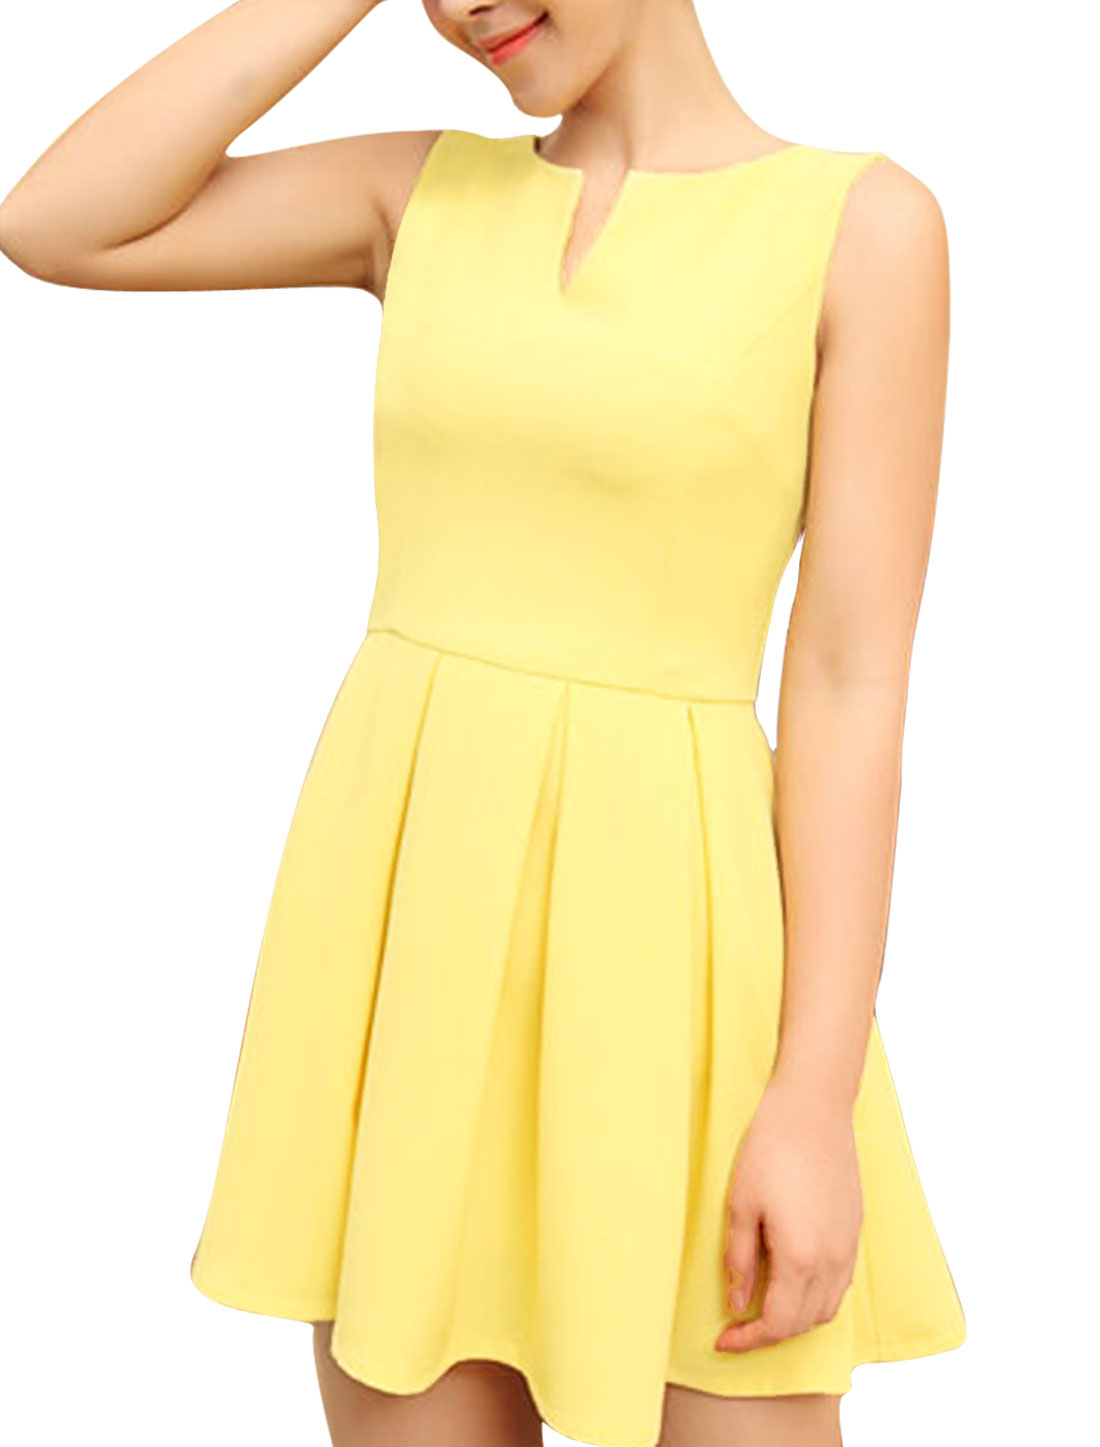 Women Sleeveless Form-fitting Split Neck Casual Summer Dress Yellow S